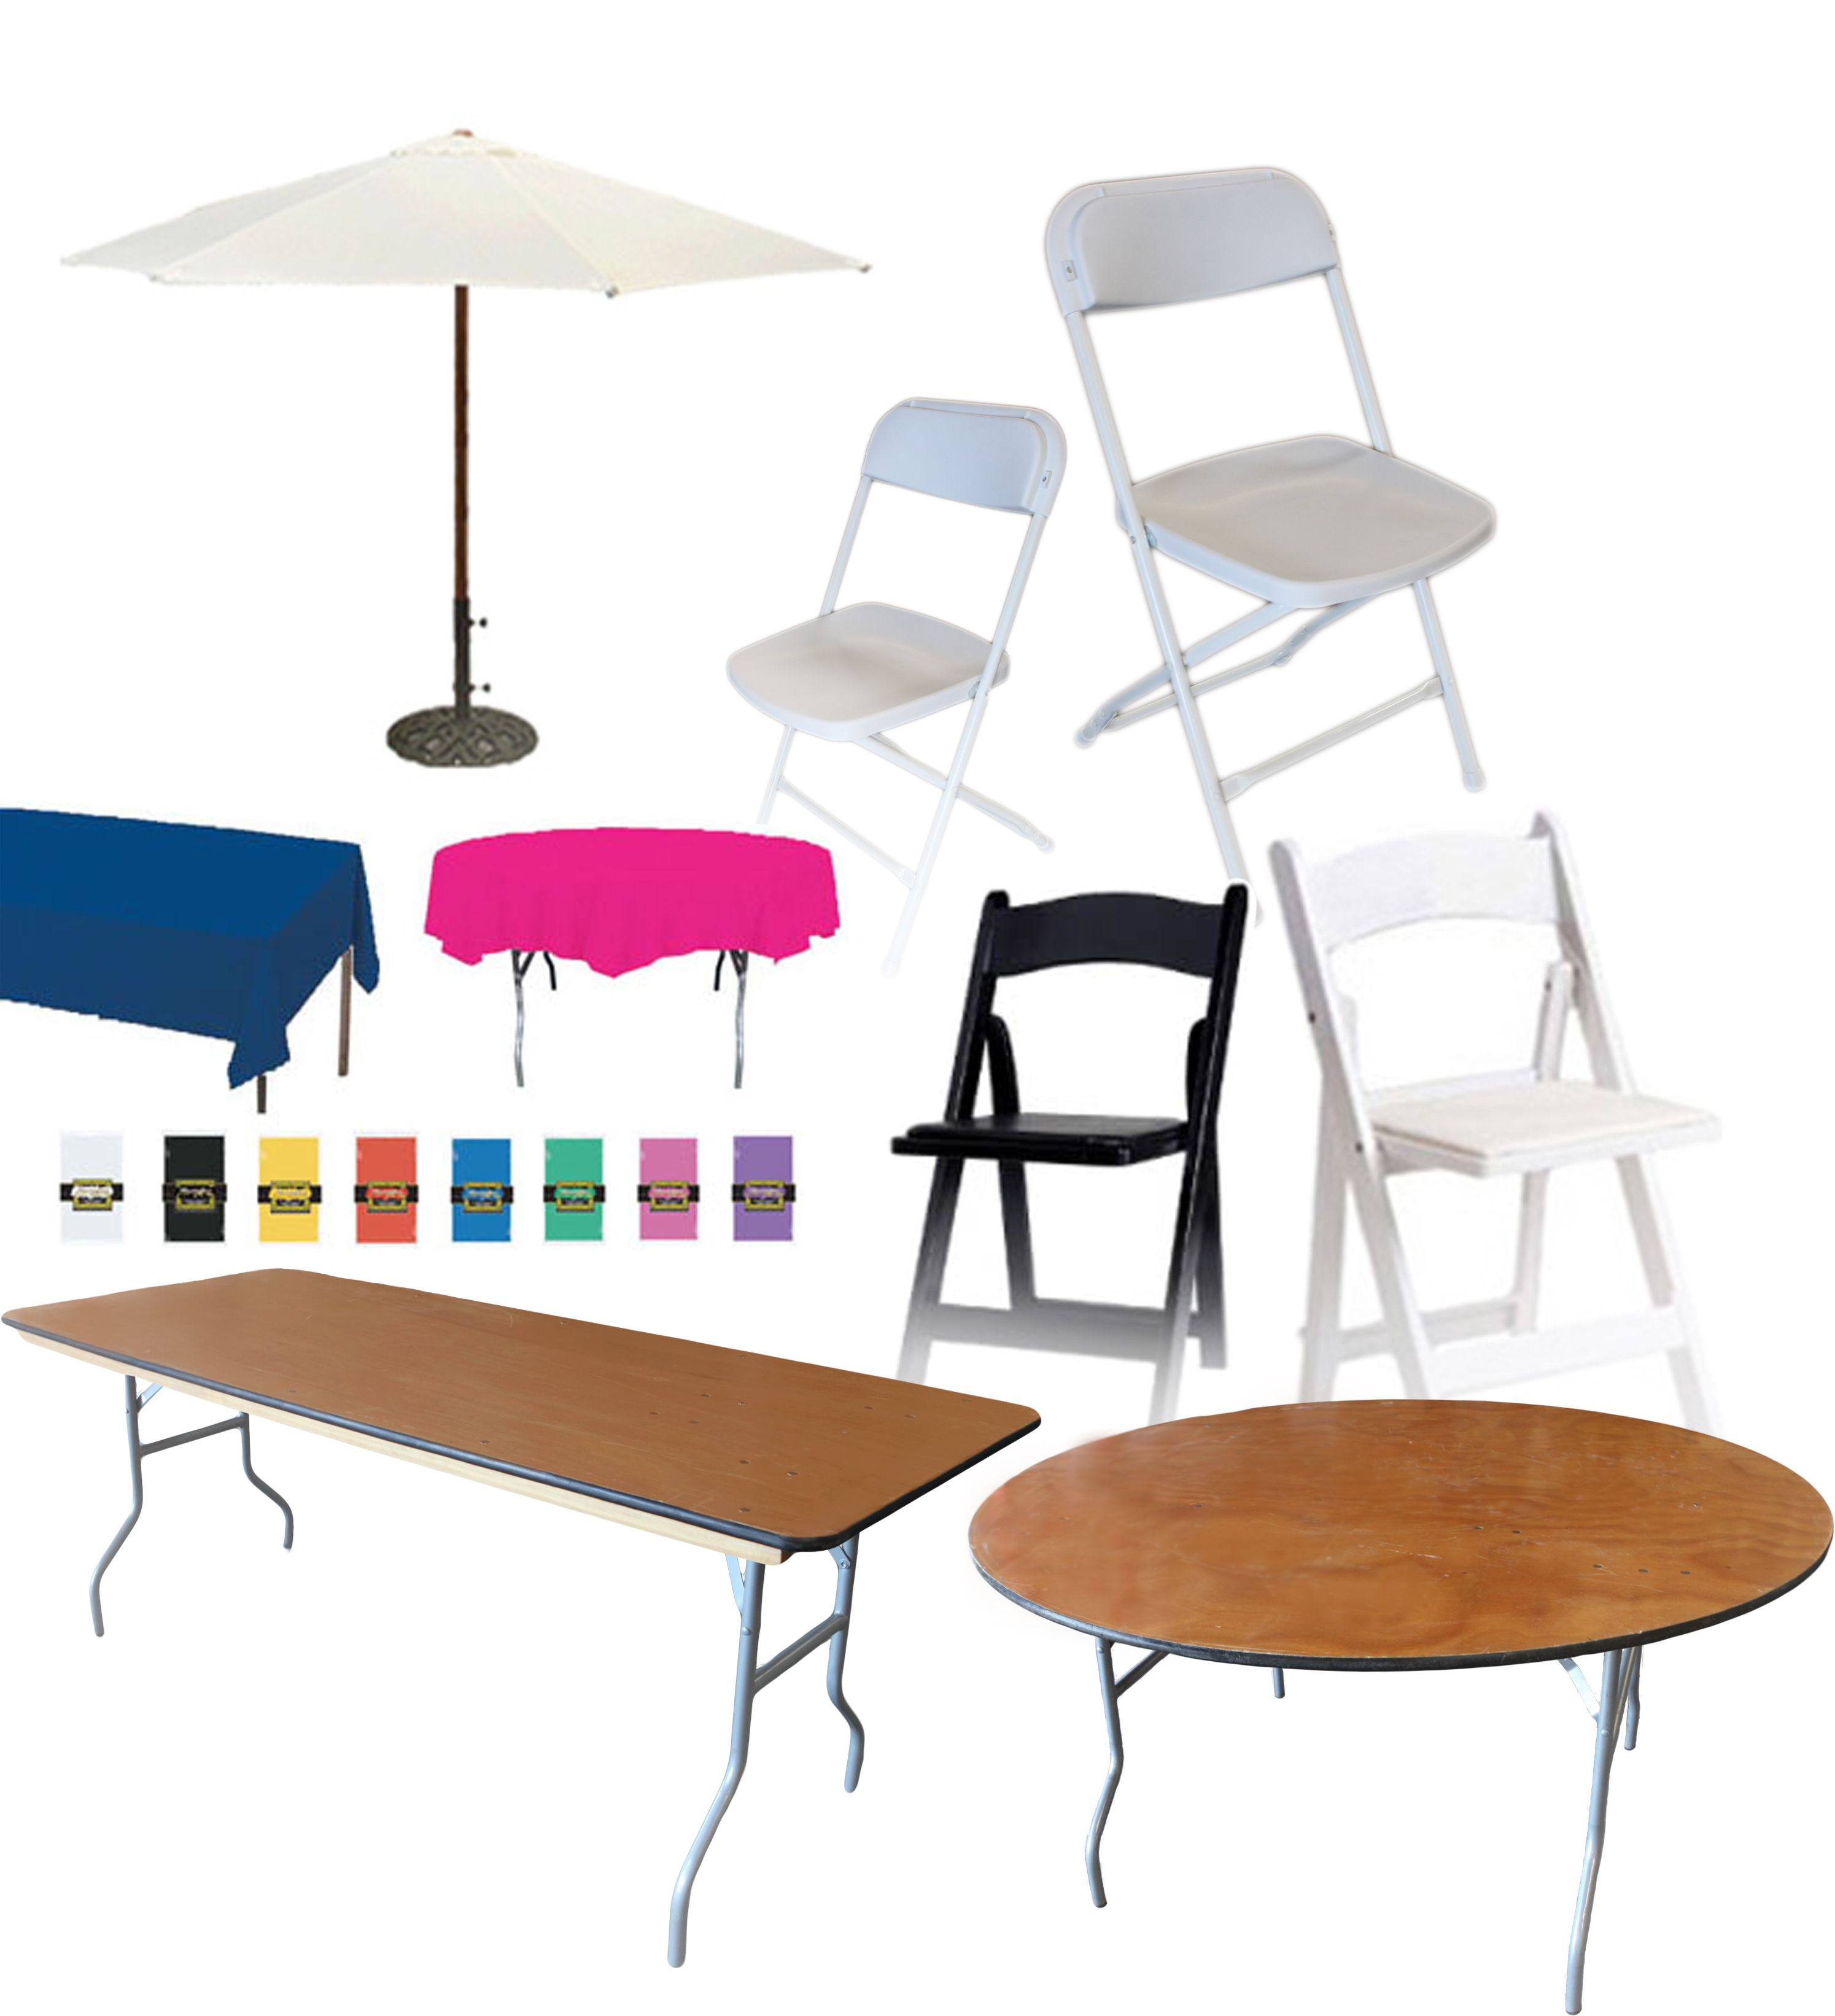 Renting Tables And Chairs For Wedding Ergonomic Chair Purpose Table Tents Umbrellas Linen Rentals Call 800 873 8989 To Rent